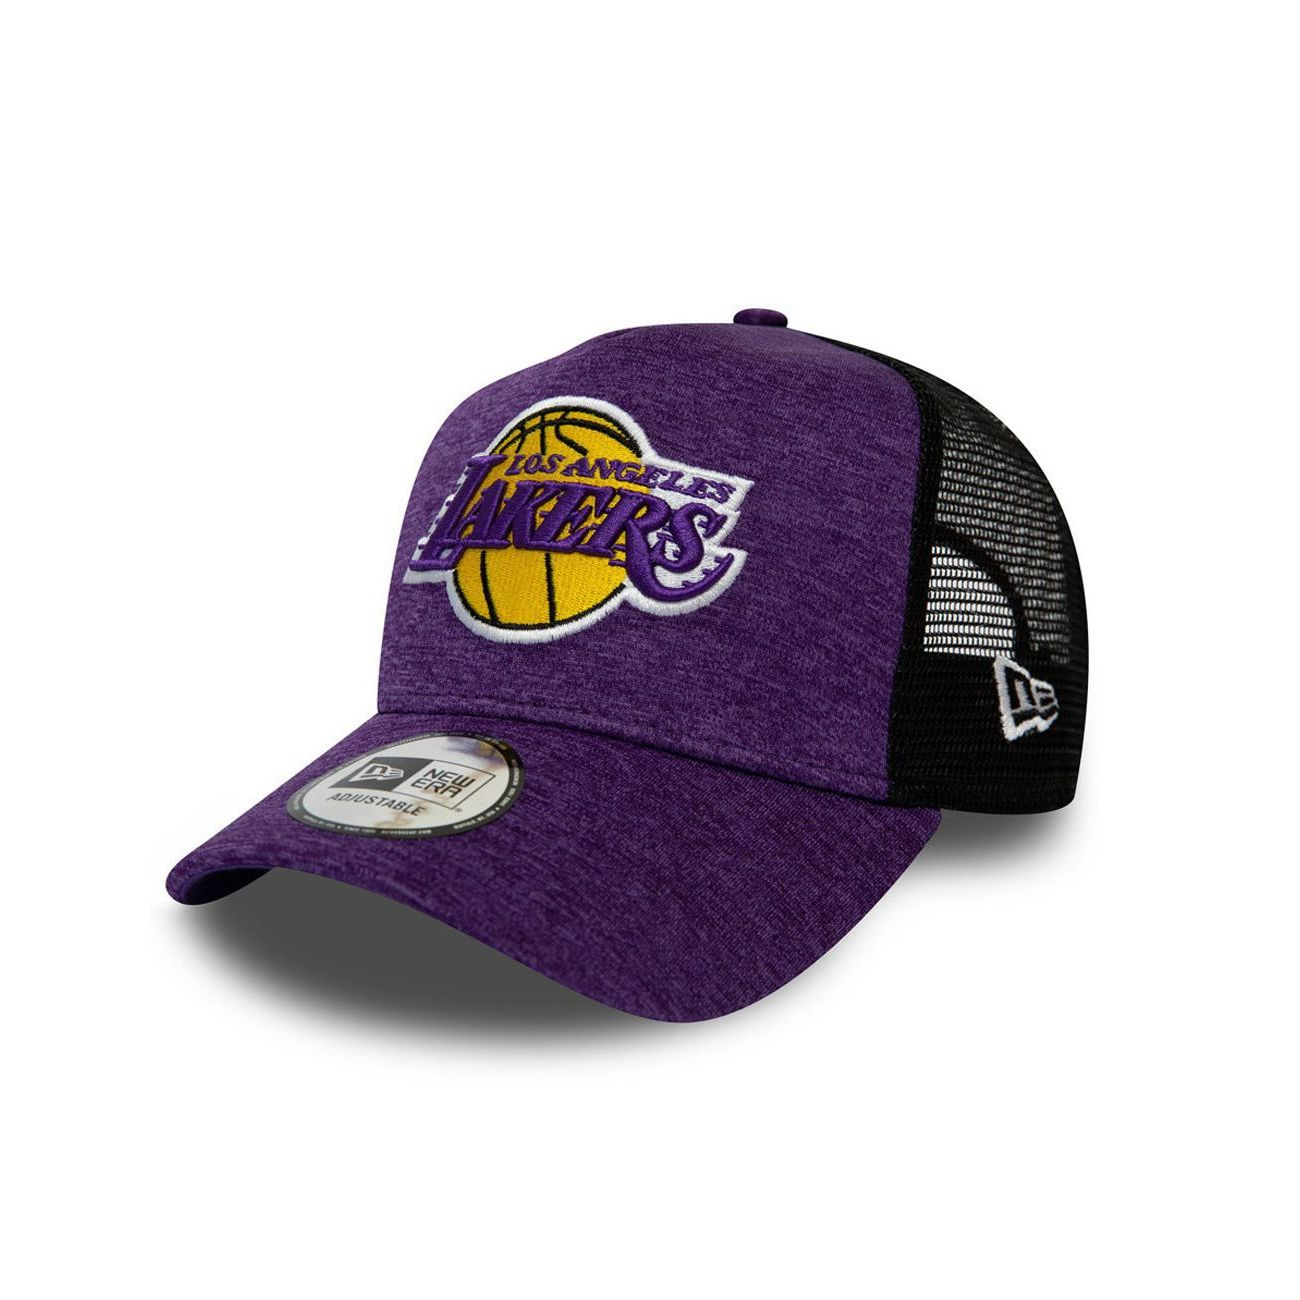 Mode- Lifestyle adulte NEW ERA Casquette trucker Los Angeles Lakers SHADOW TECH TRUCKER